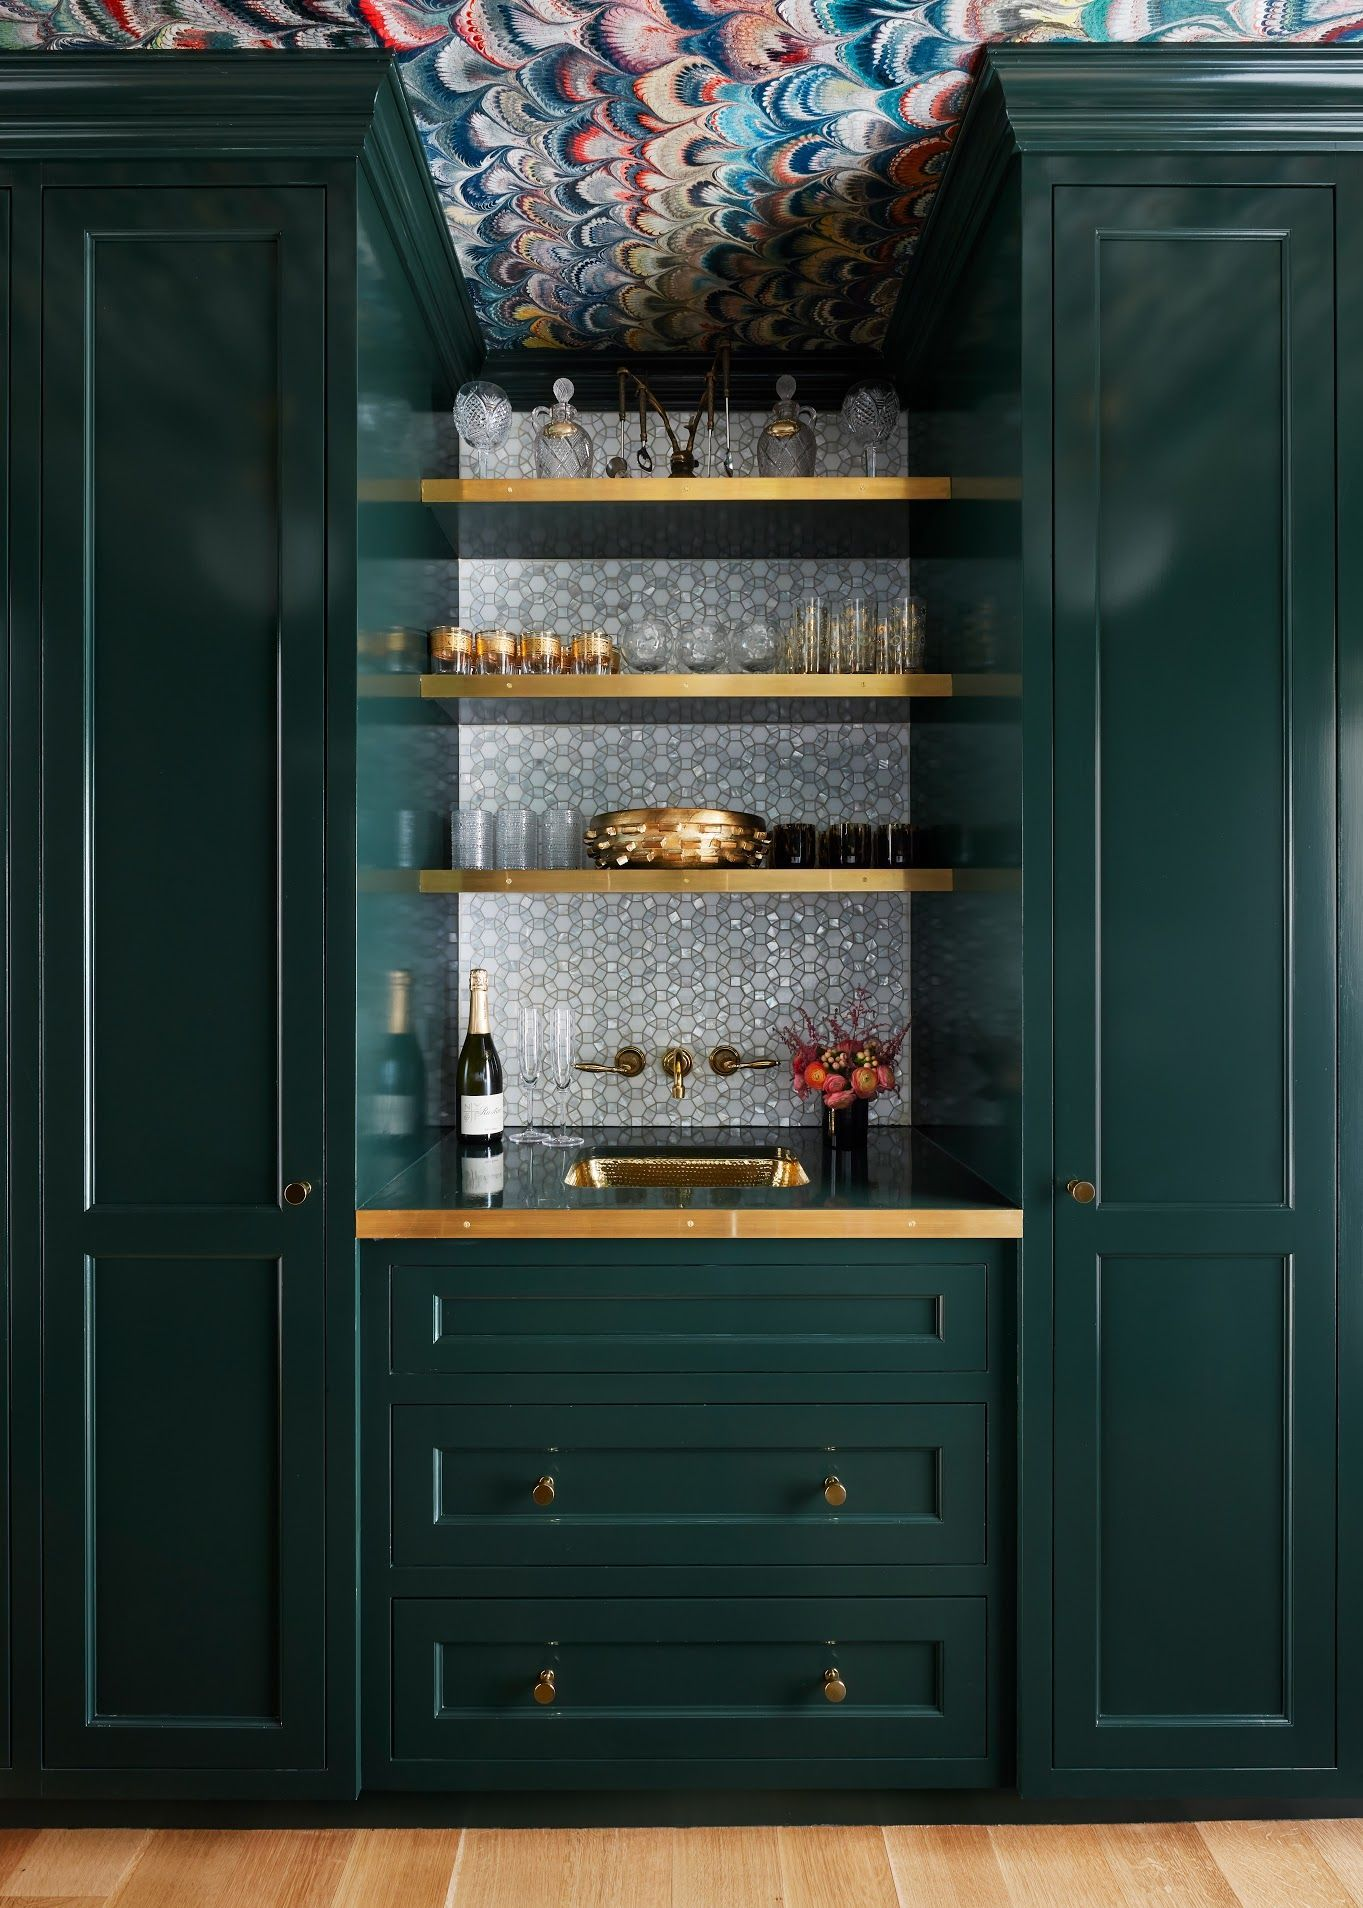 11 Best Green Paint Colors For Cabinetry According To Experts Dark Green Kitchen Green Kitchen Cabinets Green Paint Colors